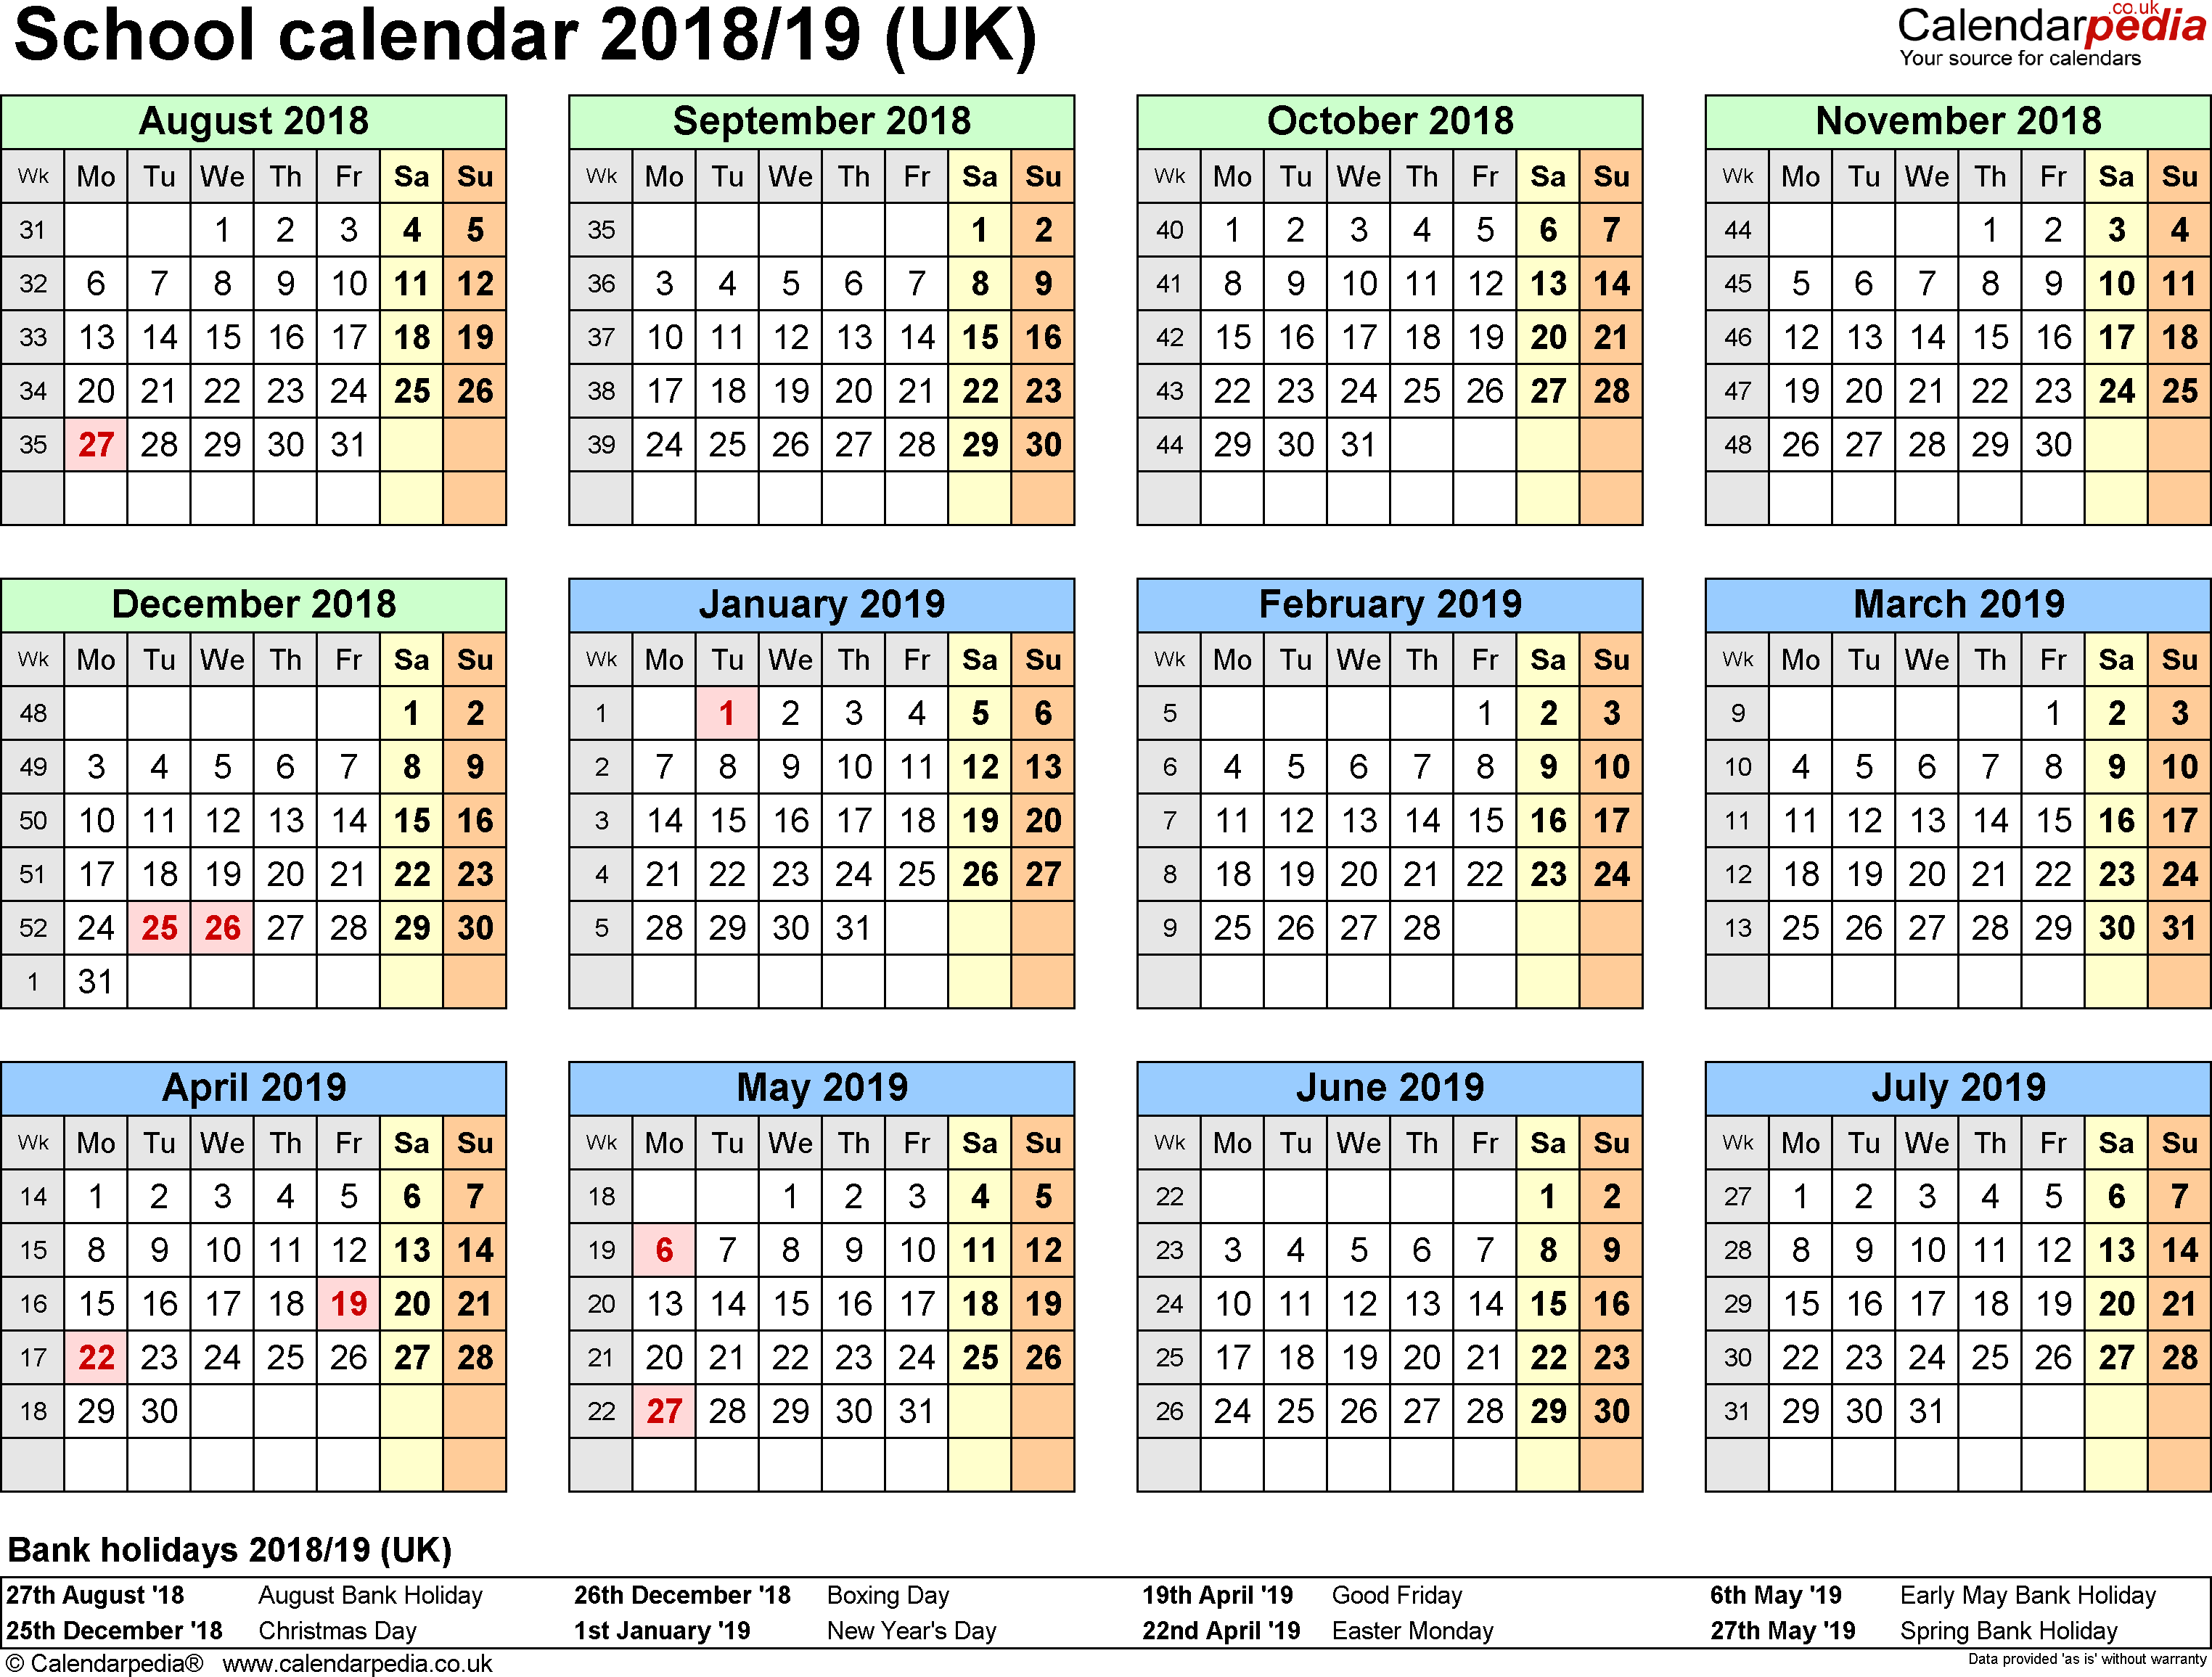 Download Template 4: School year calendars 2018/19 for Microsoft Word, year at a glance, 1 page